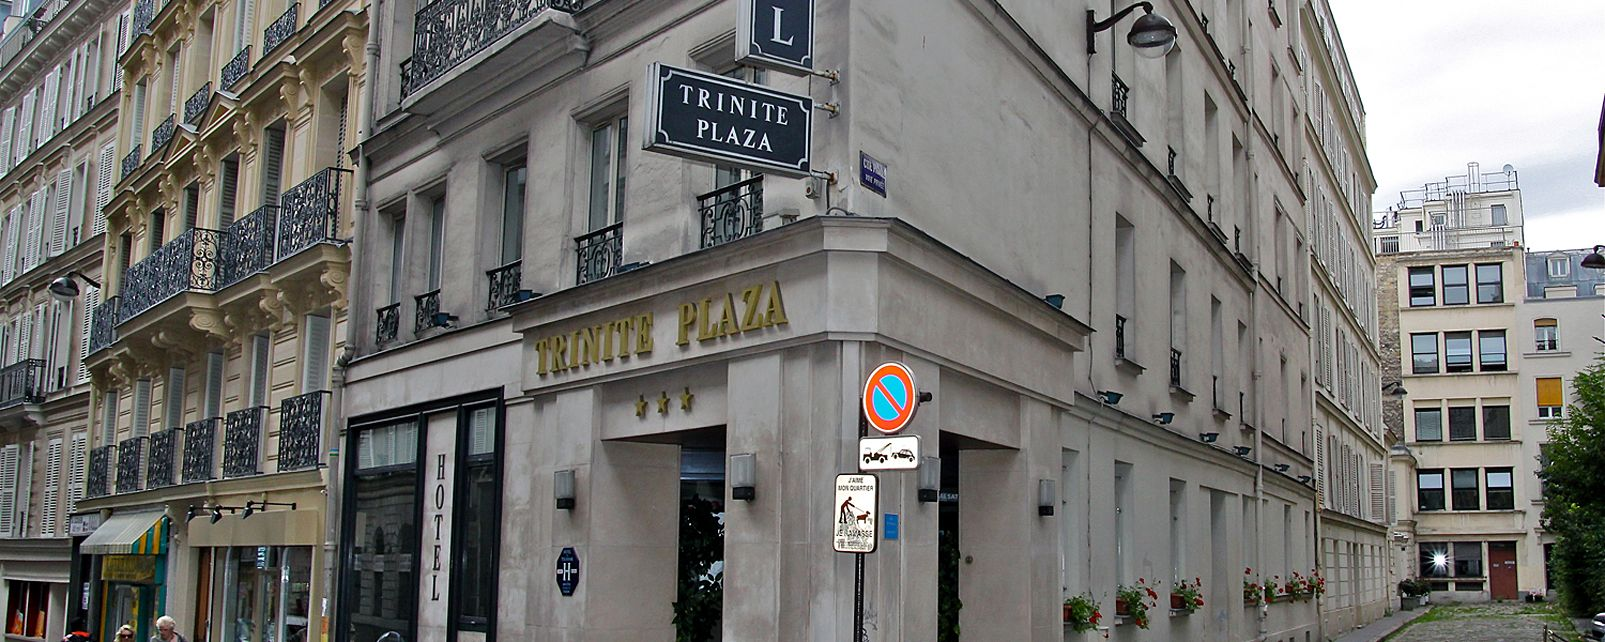 Hôtel Trinite Plaza